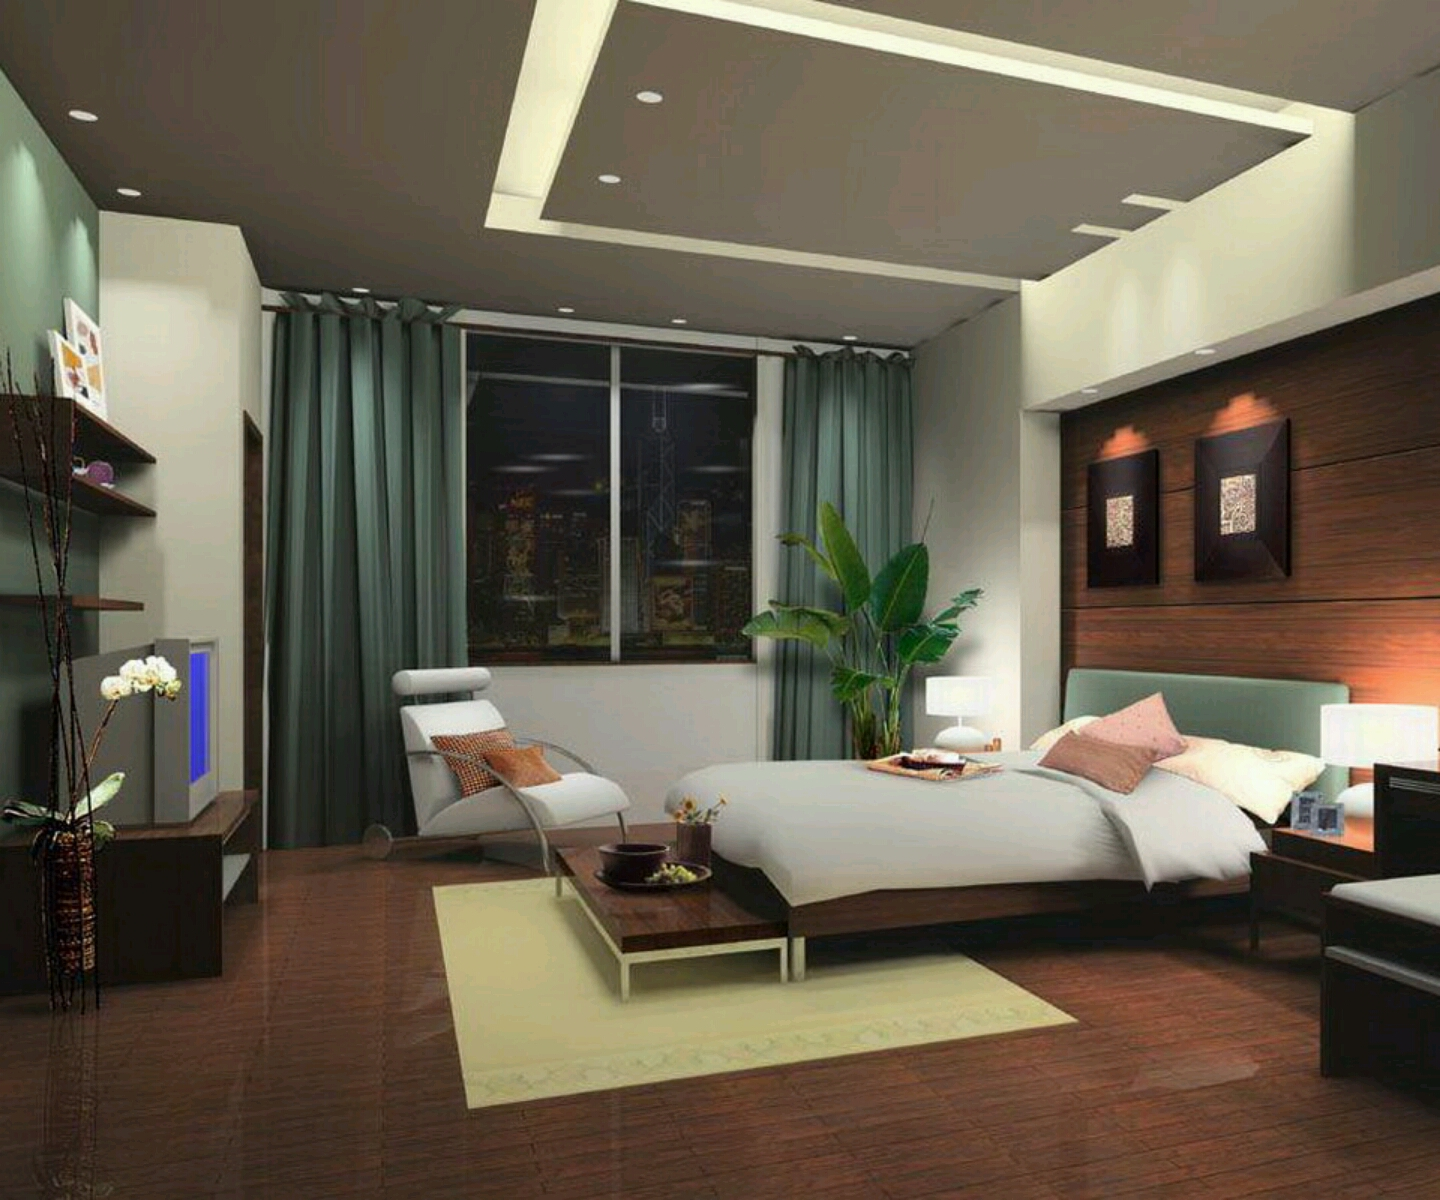 Home Design Ideas Modern: New Home Designs Latest.: Modern Bedrooms Designs Best Ideas